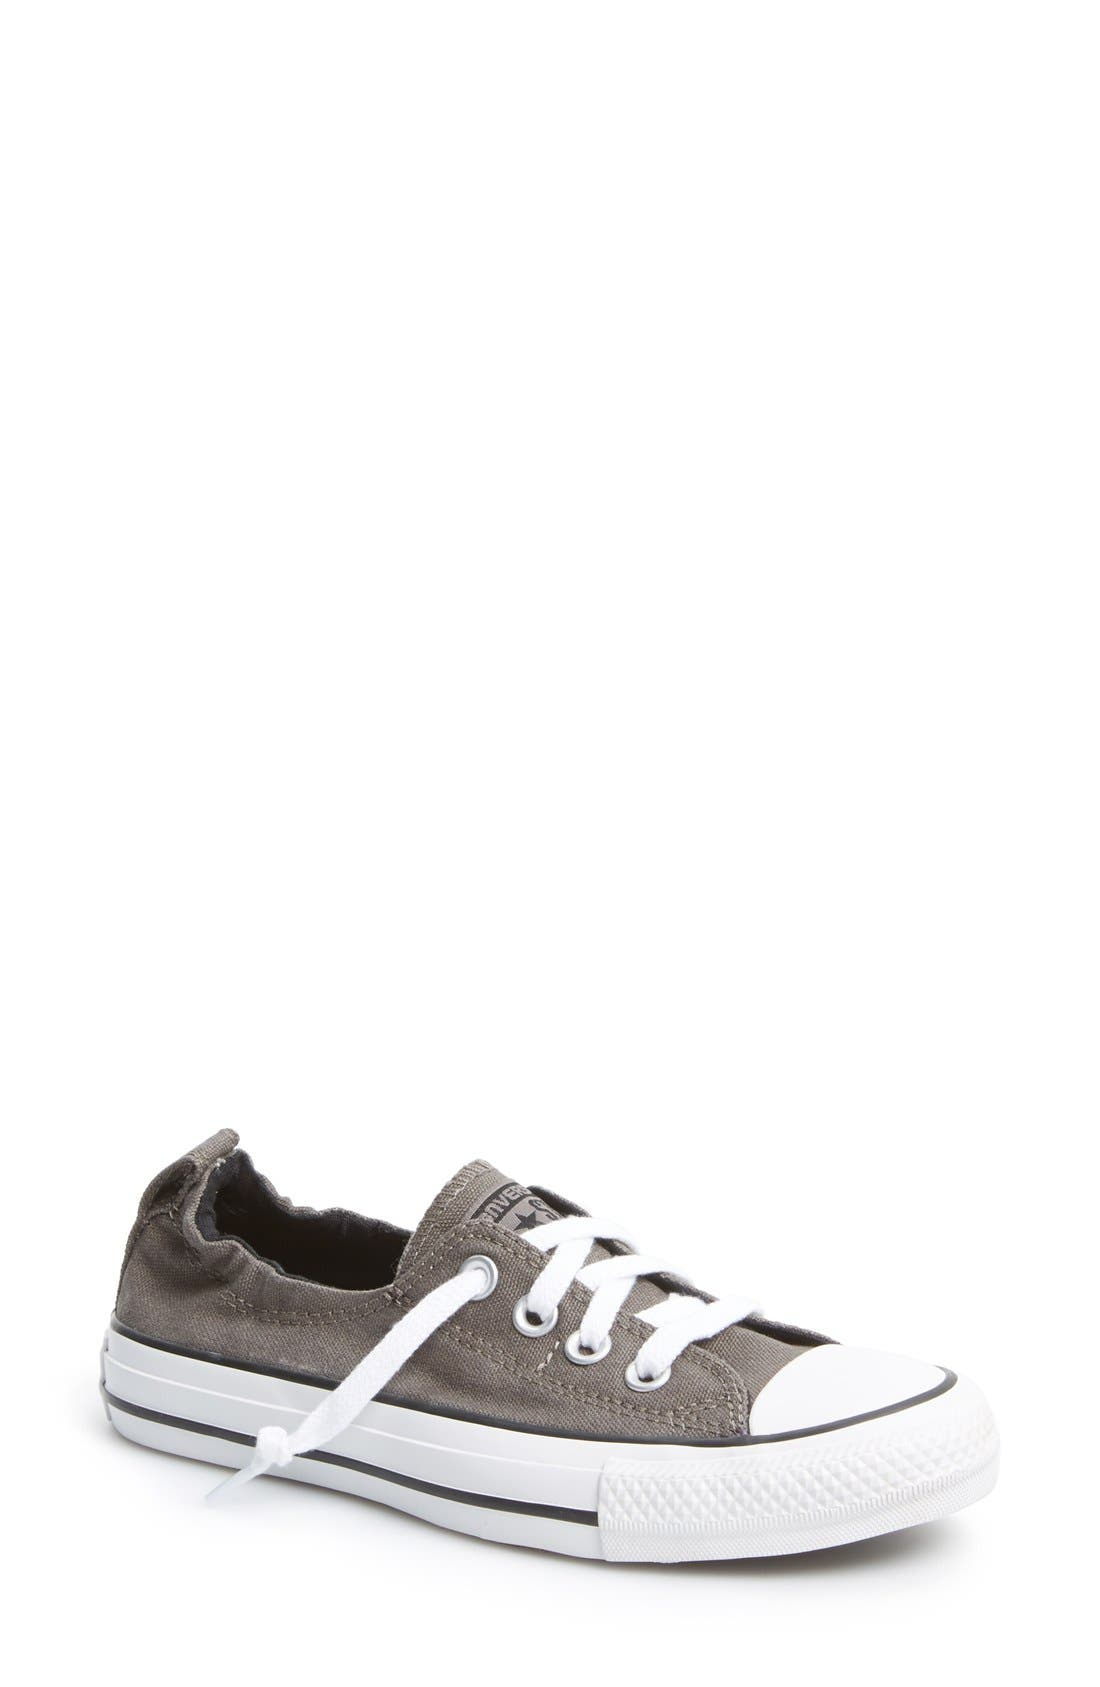 CONVERSE, Chuck Taylor<sup>®</sup> All Star<sup>®</sup> Shoreline Low Top Sneaker, Main thumbnail 1, color, 050